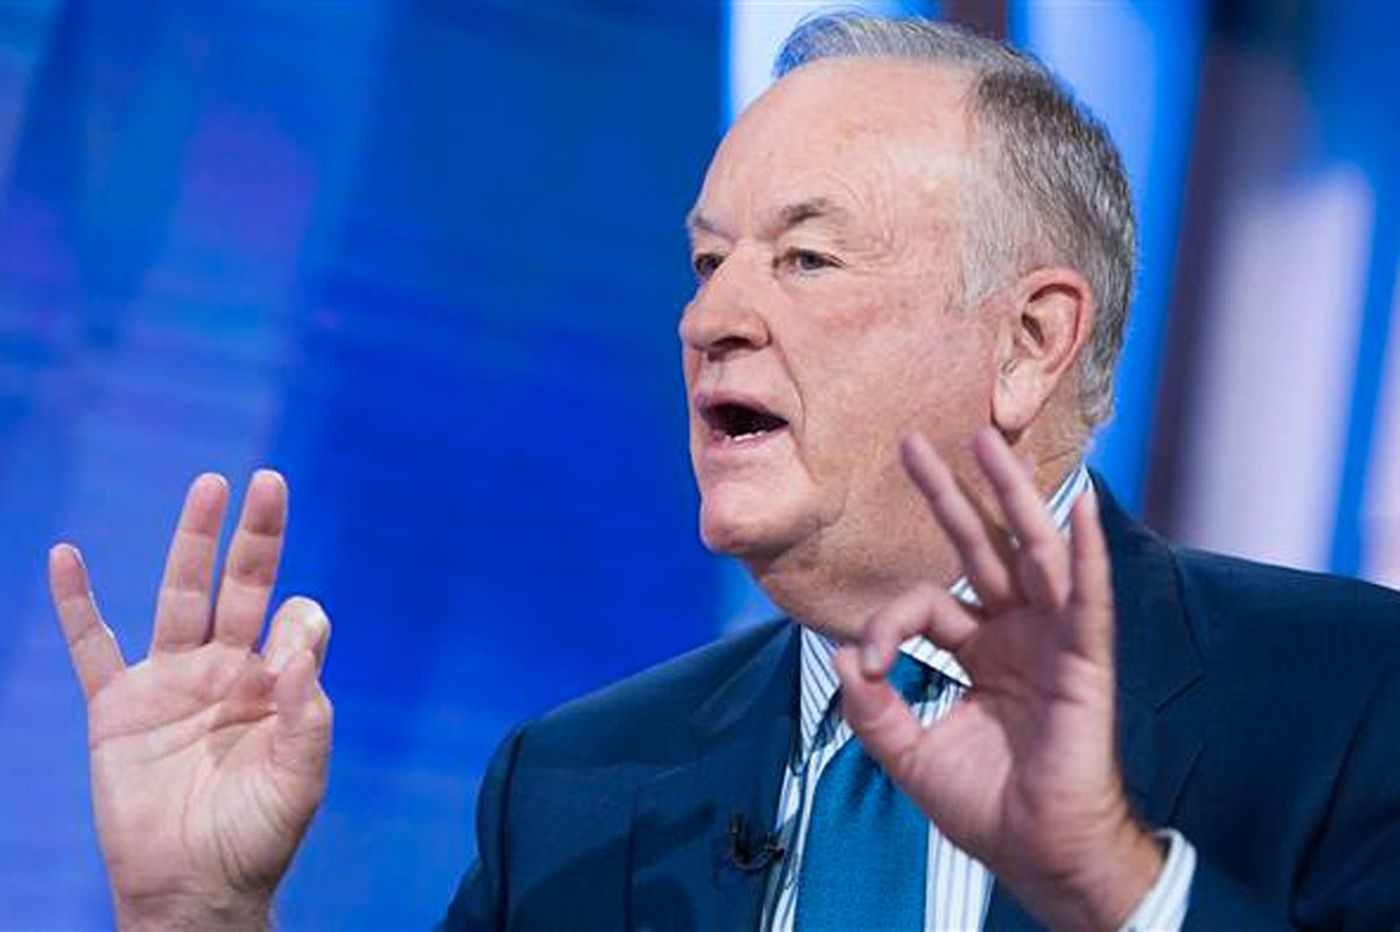 Bill O'Reilly thought the mic was off when he blasted NY Times reporters